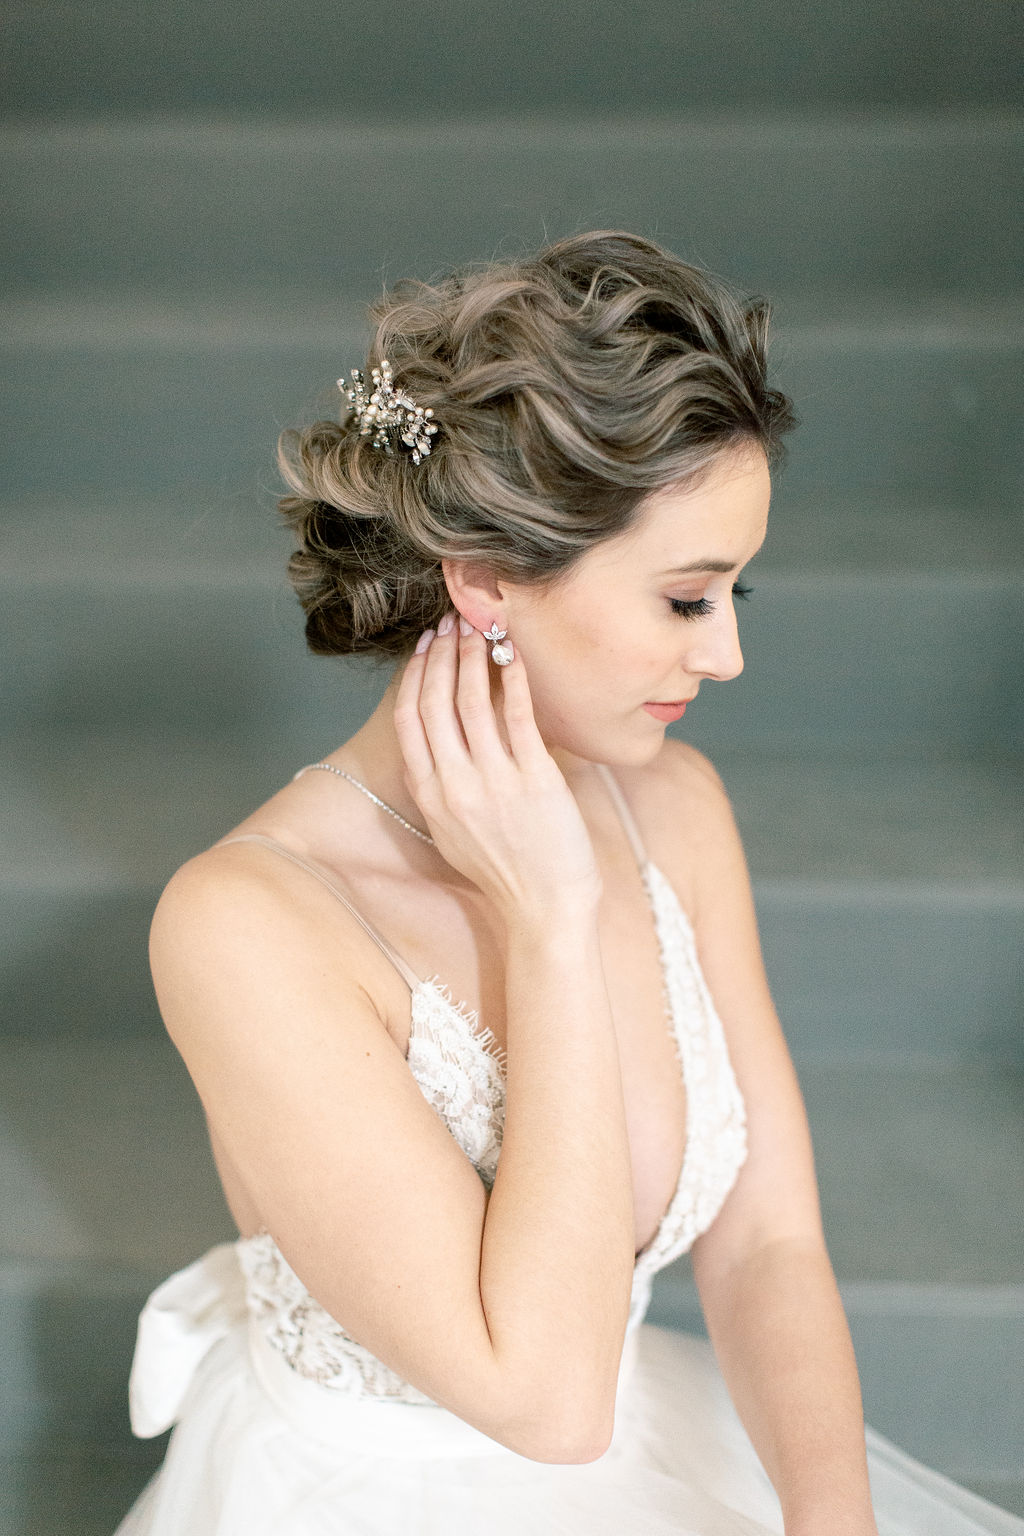 Hair & Makeup: Robin ~ Photo: Stephanie Couture Photography